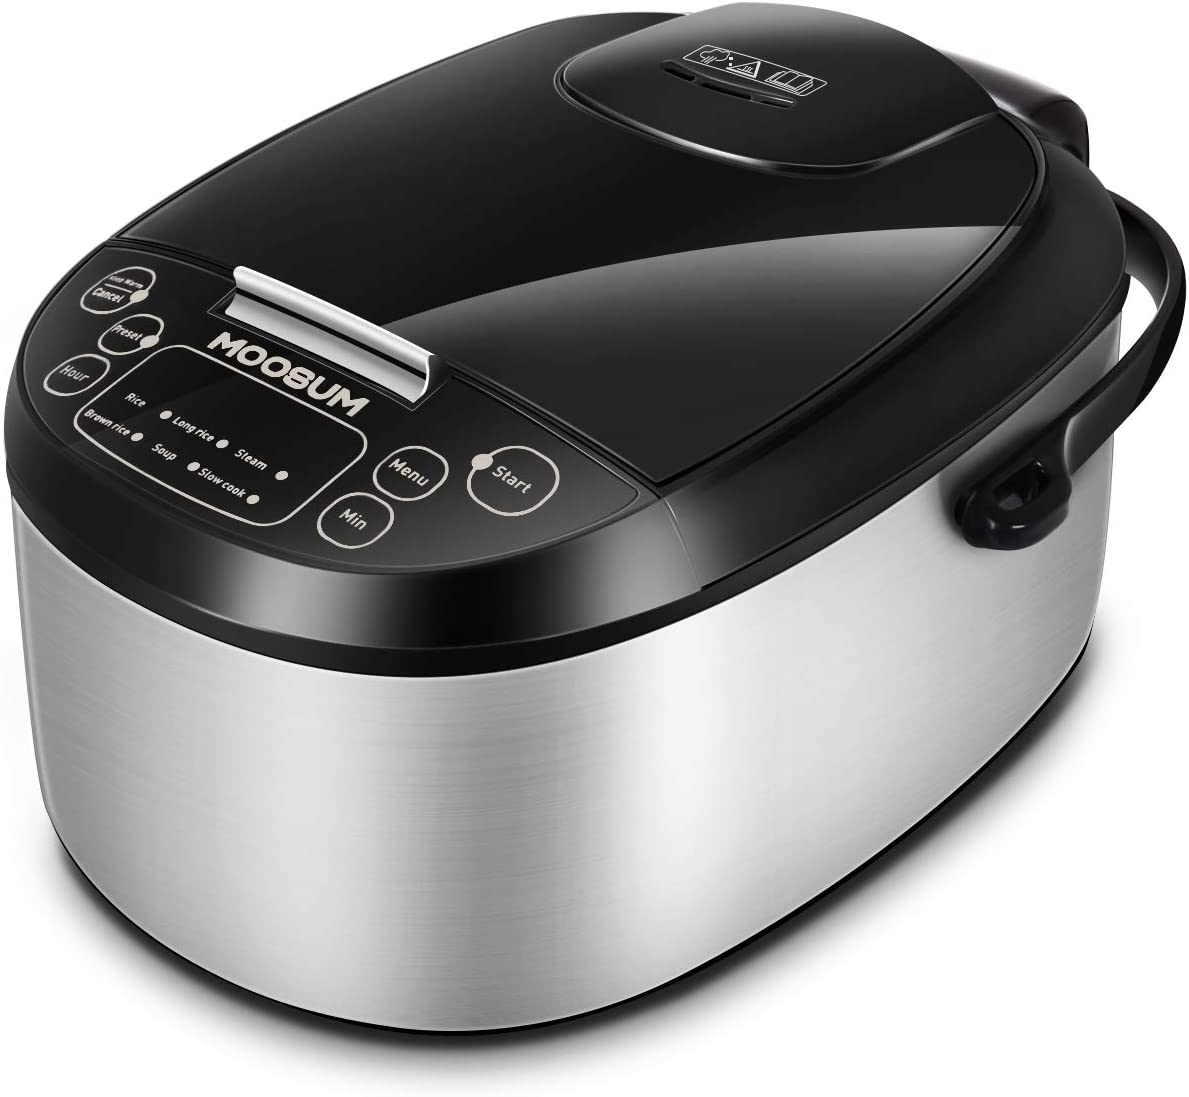 Moosum Electric Rice Cooker, 6-in-1 Steel Cooker, Multi-use Programmable Slow Cooker, Sauté, Stew Pot, Soup Pot, Steamer, Food Warmer, Stainless Steel, 1.8L/10-Cup (Uncooked)